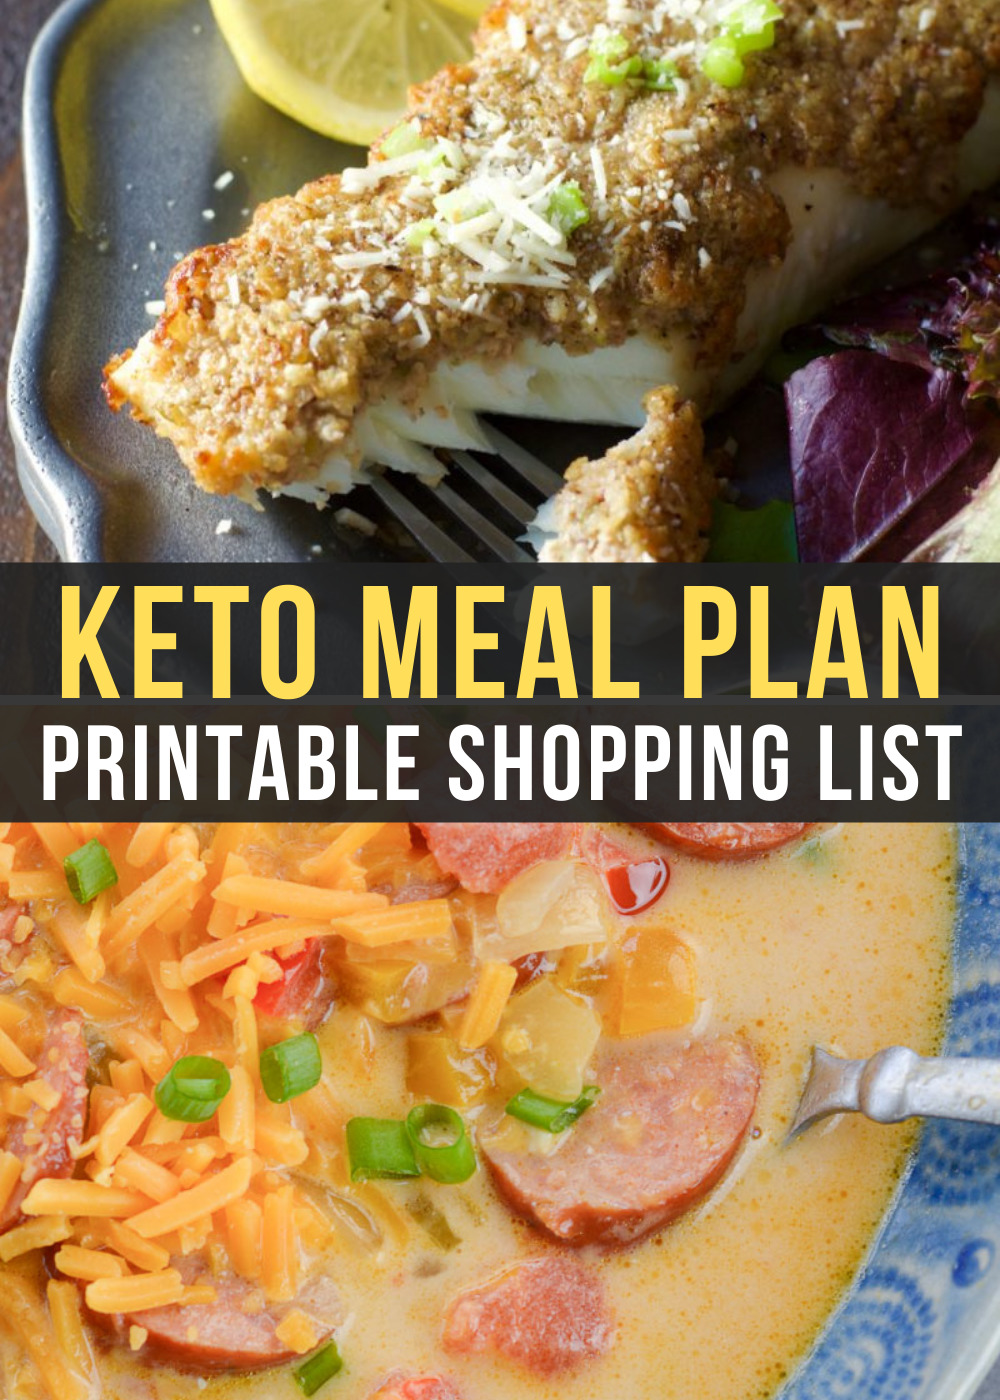 Week 15 of the Easy Keto Meal Plan includes tasty low-carb dishes like Cheesy Smoked Sausage Soup and Parmesan Crusted Halibut!